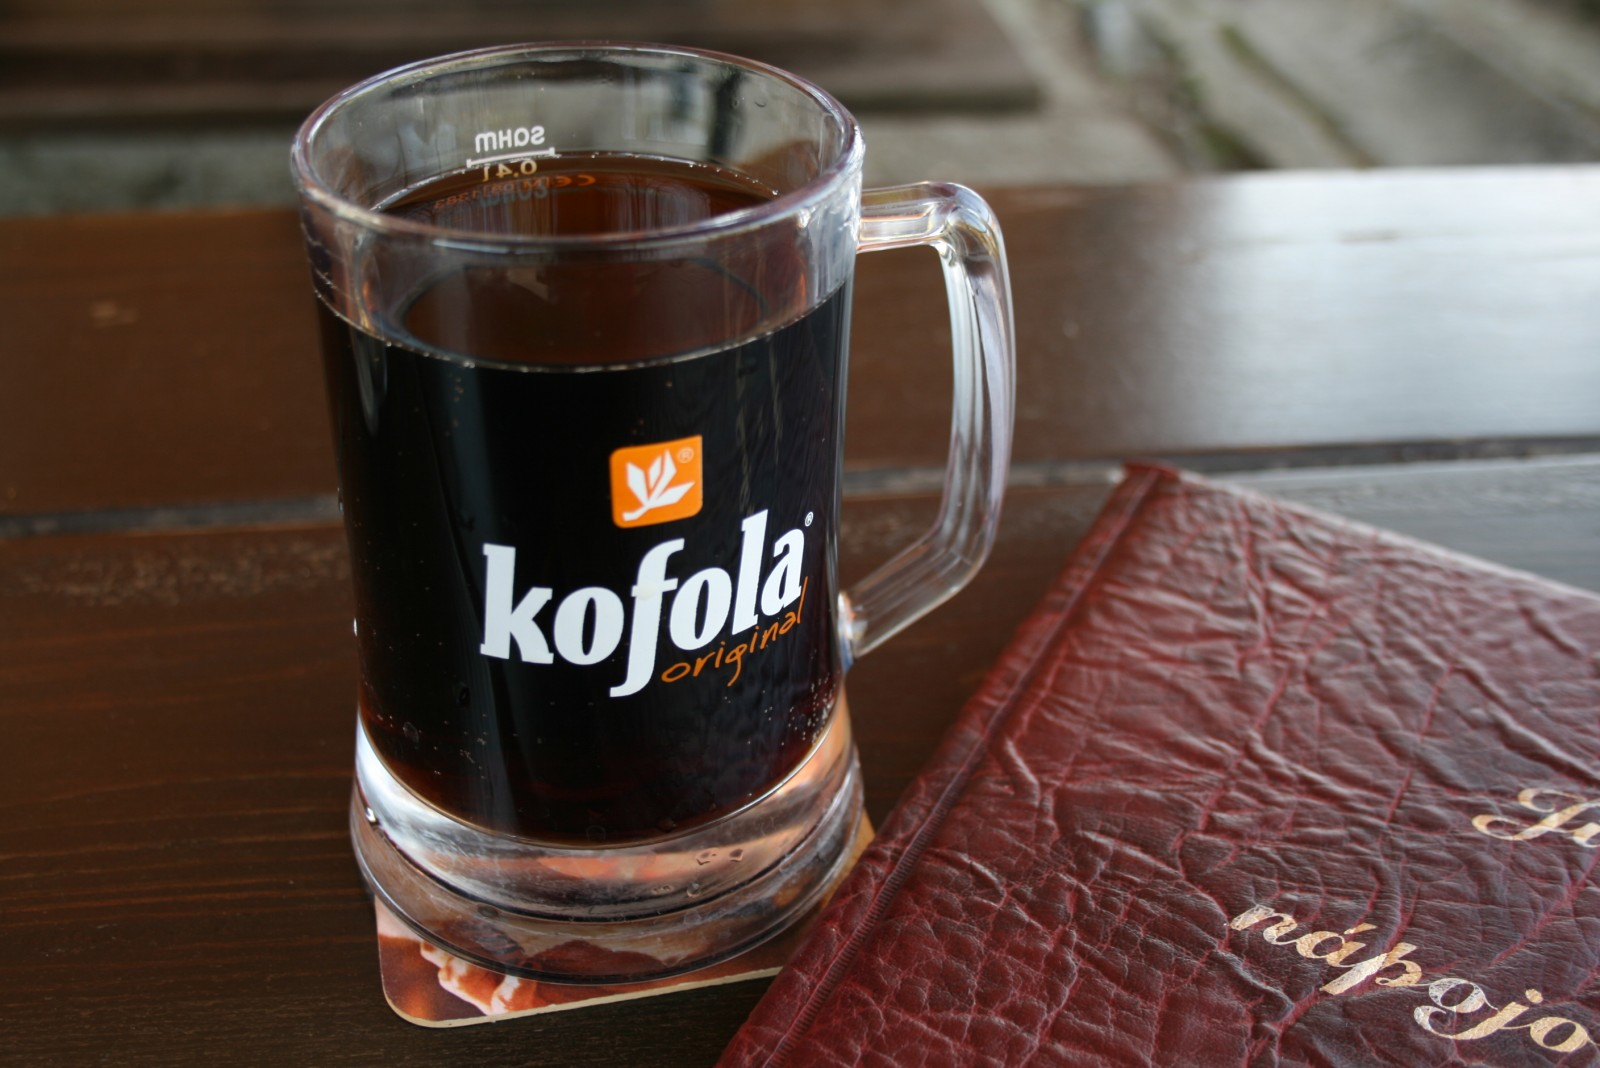 Glass of Kofola